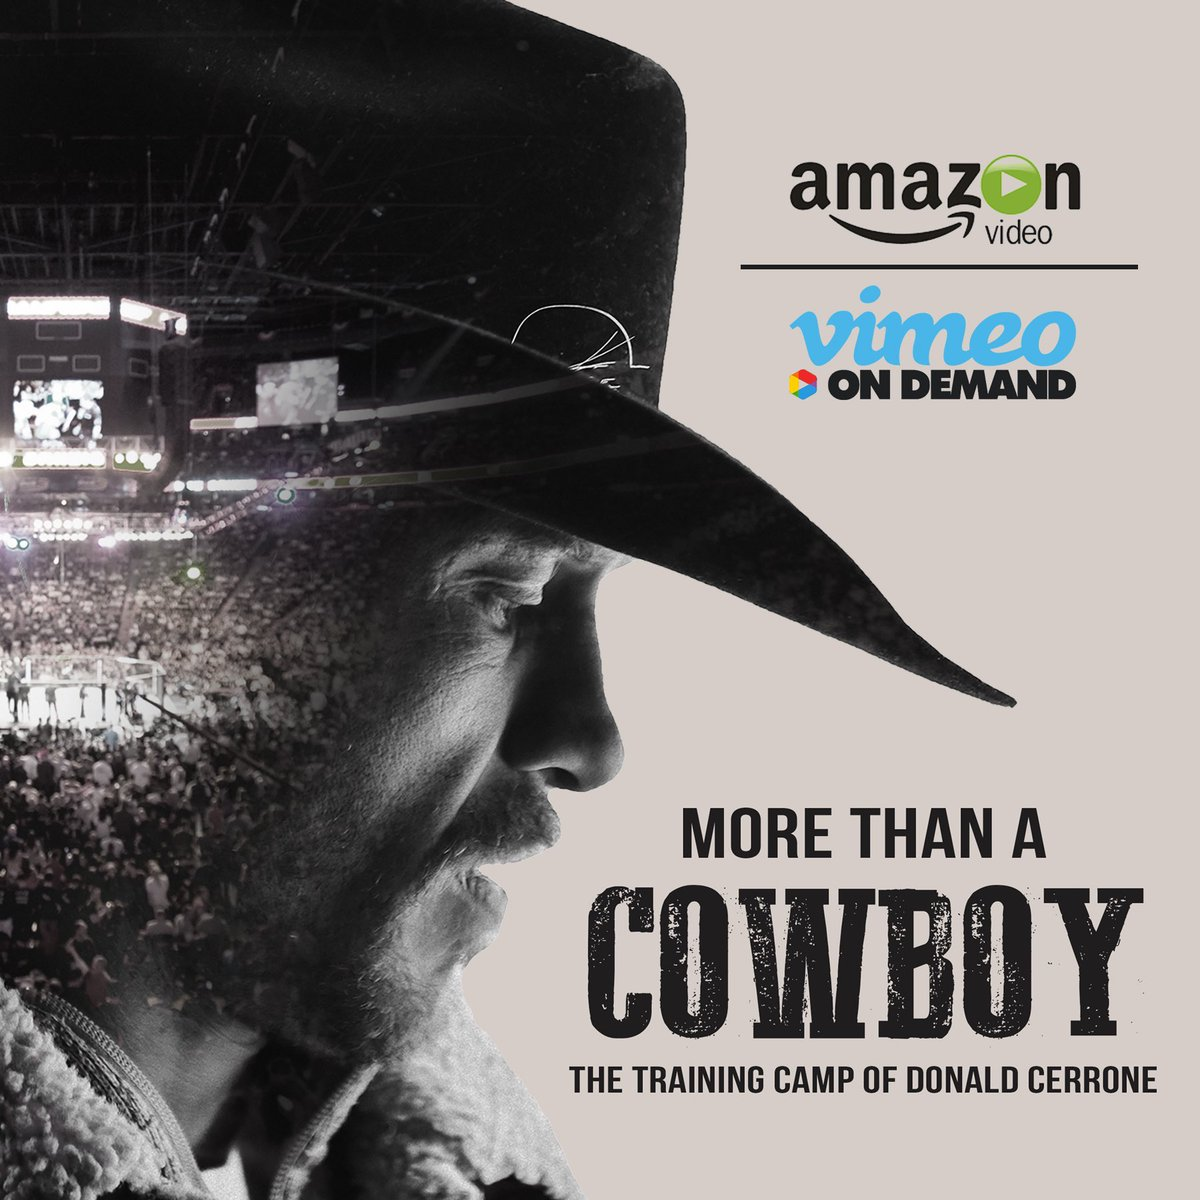 🥊MMA Cowboy Cerrone Giveaway🥊  -Win a @Cowboycerrone signed poster and T shirt.  🔥Rules🔥  - Retweet this tweet & purchase the first two episodes of Donald's doc series 'MORE THAN A COWBOY'  🚫MUST DM ME PROOF OF PURCHASE FOR ENTRY🚫  Available on Amazon Video & Vimeo. https://t.co/bGL2EYjrd2